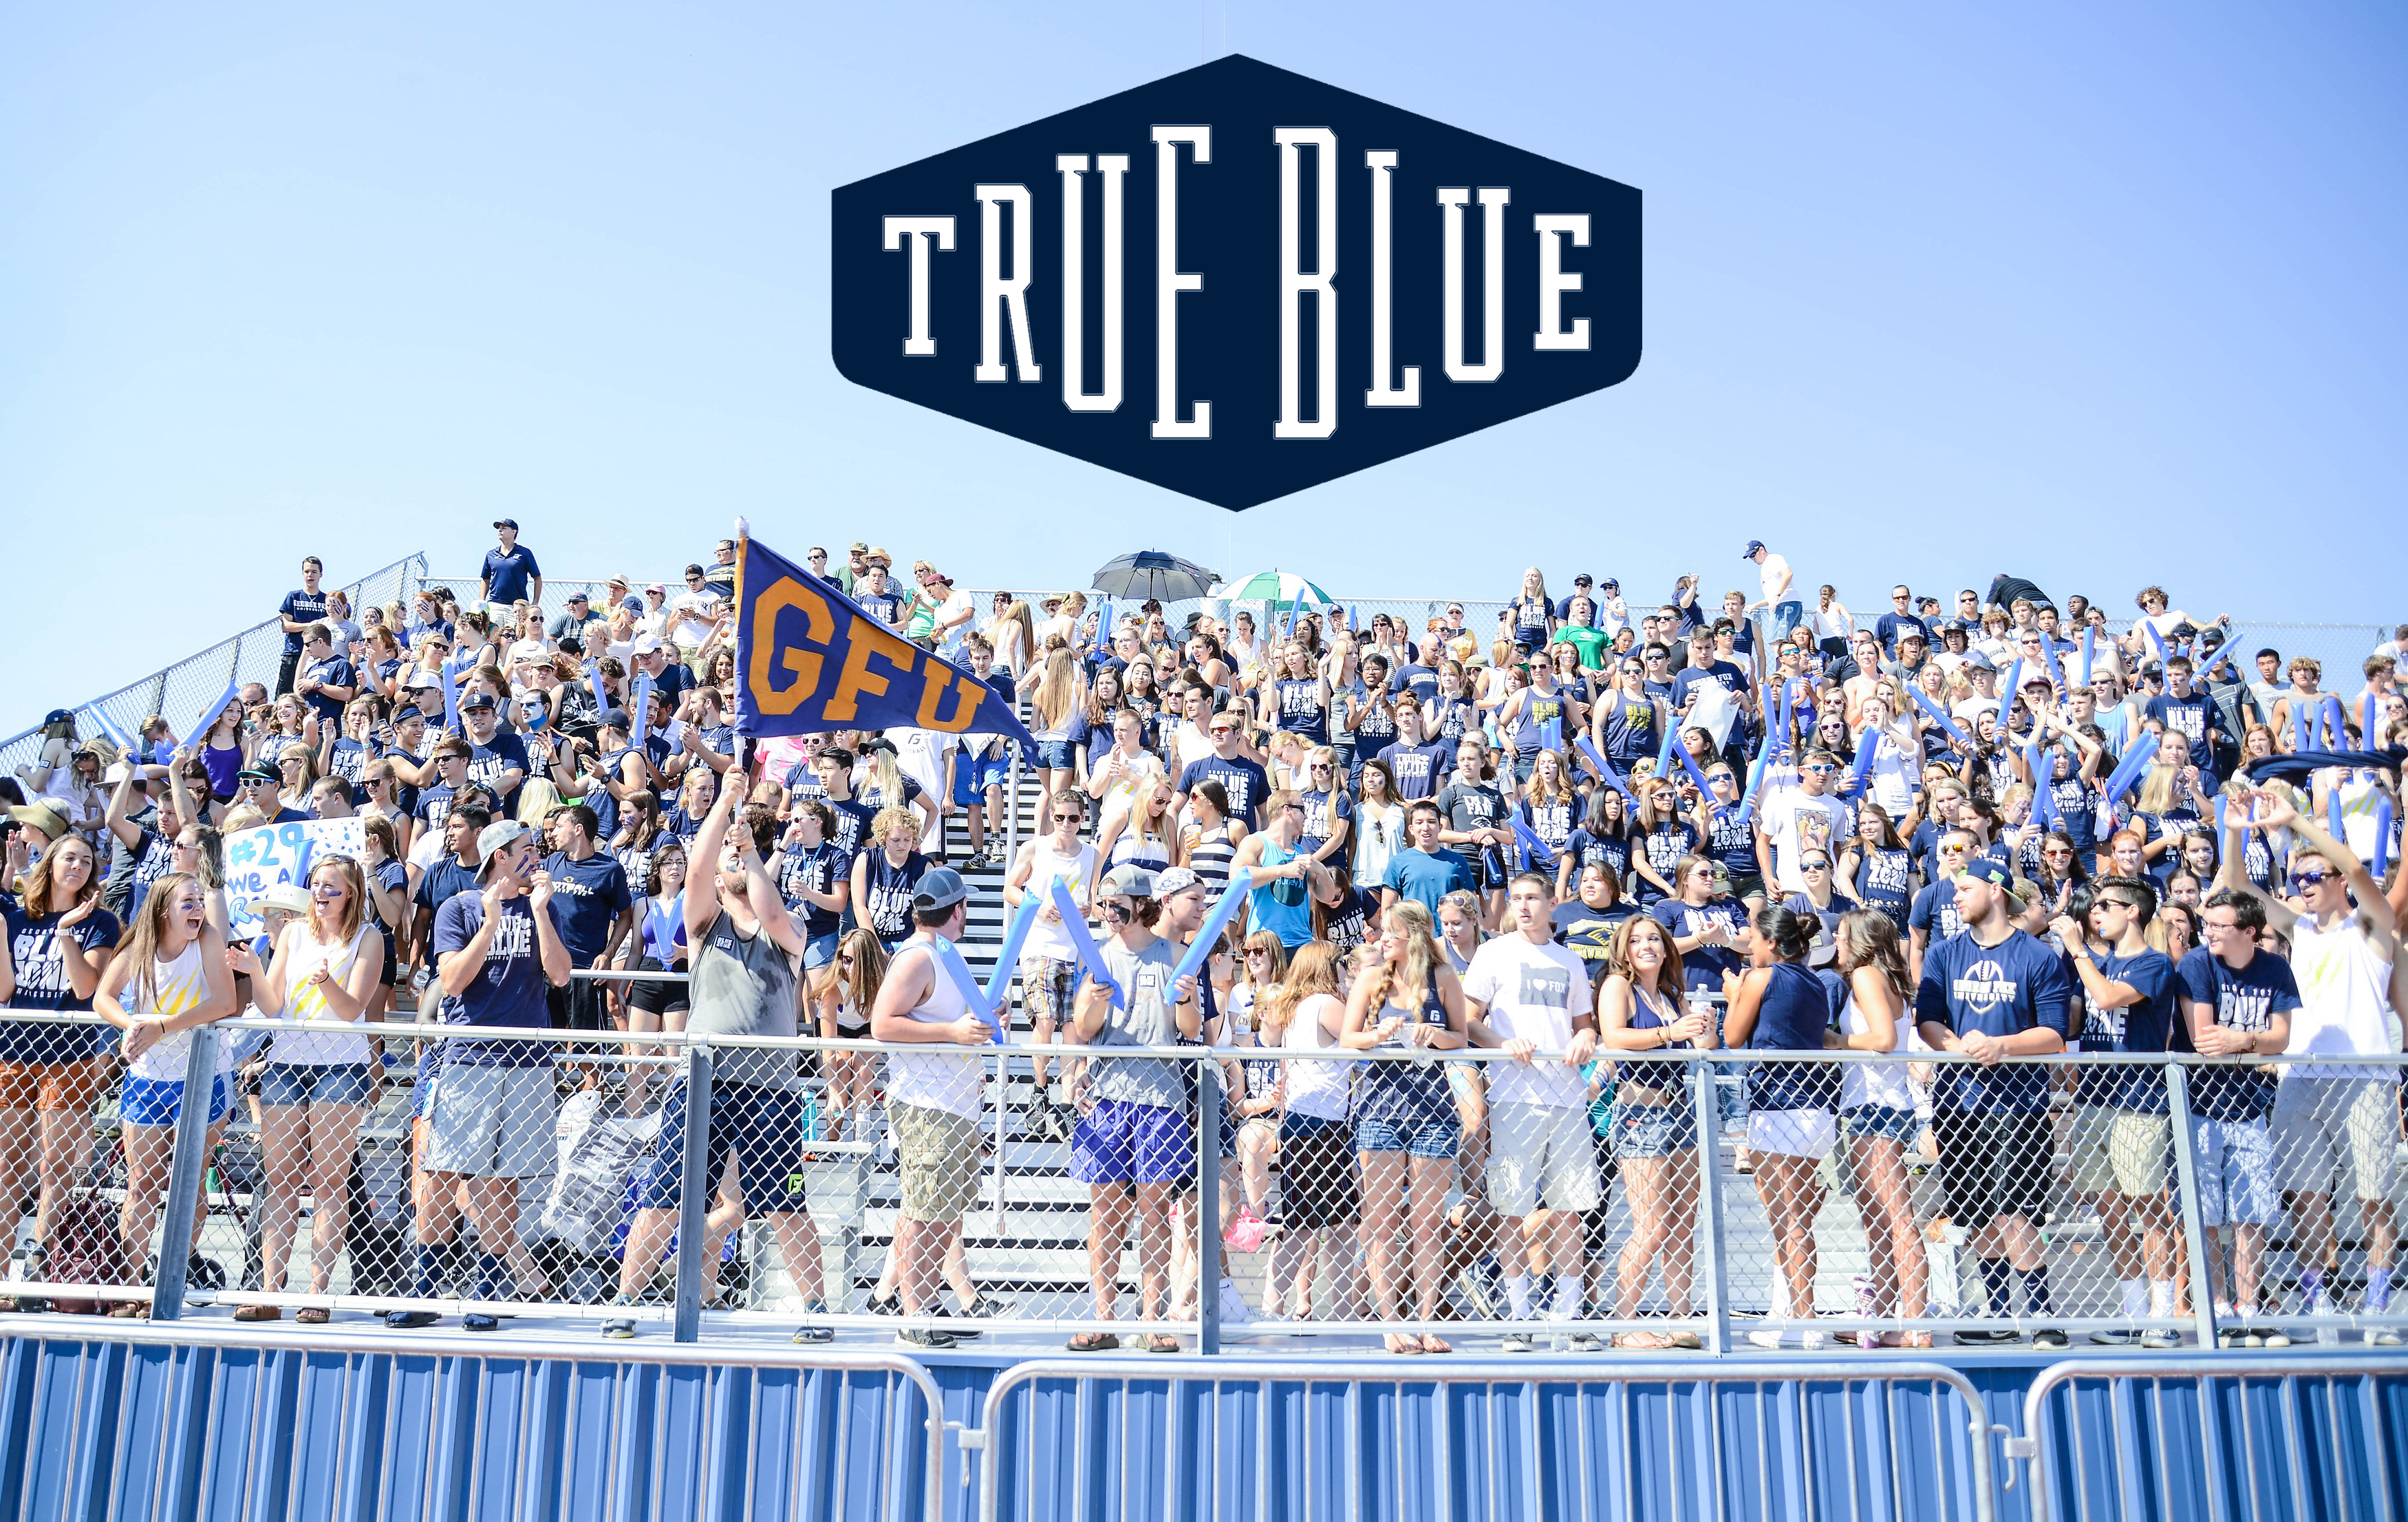 Who are the True Blue Bruins?